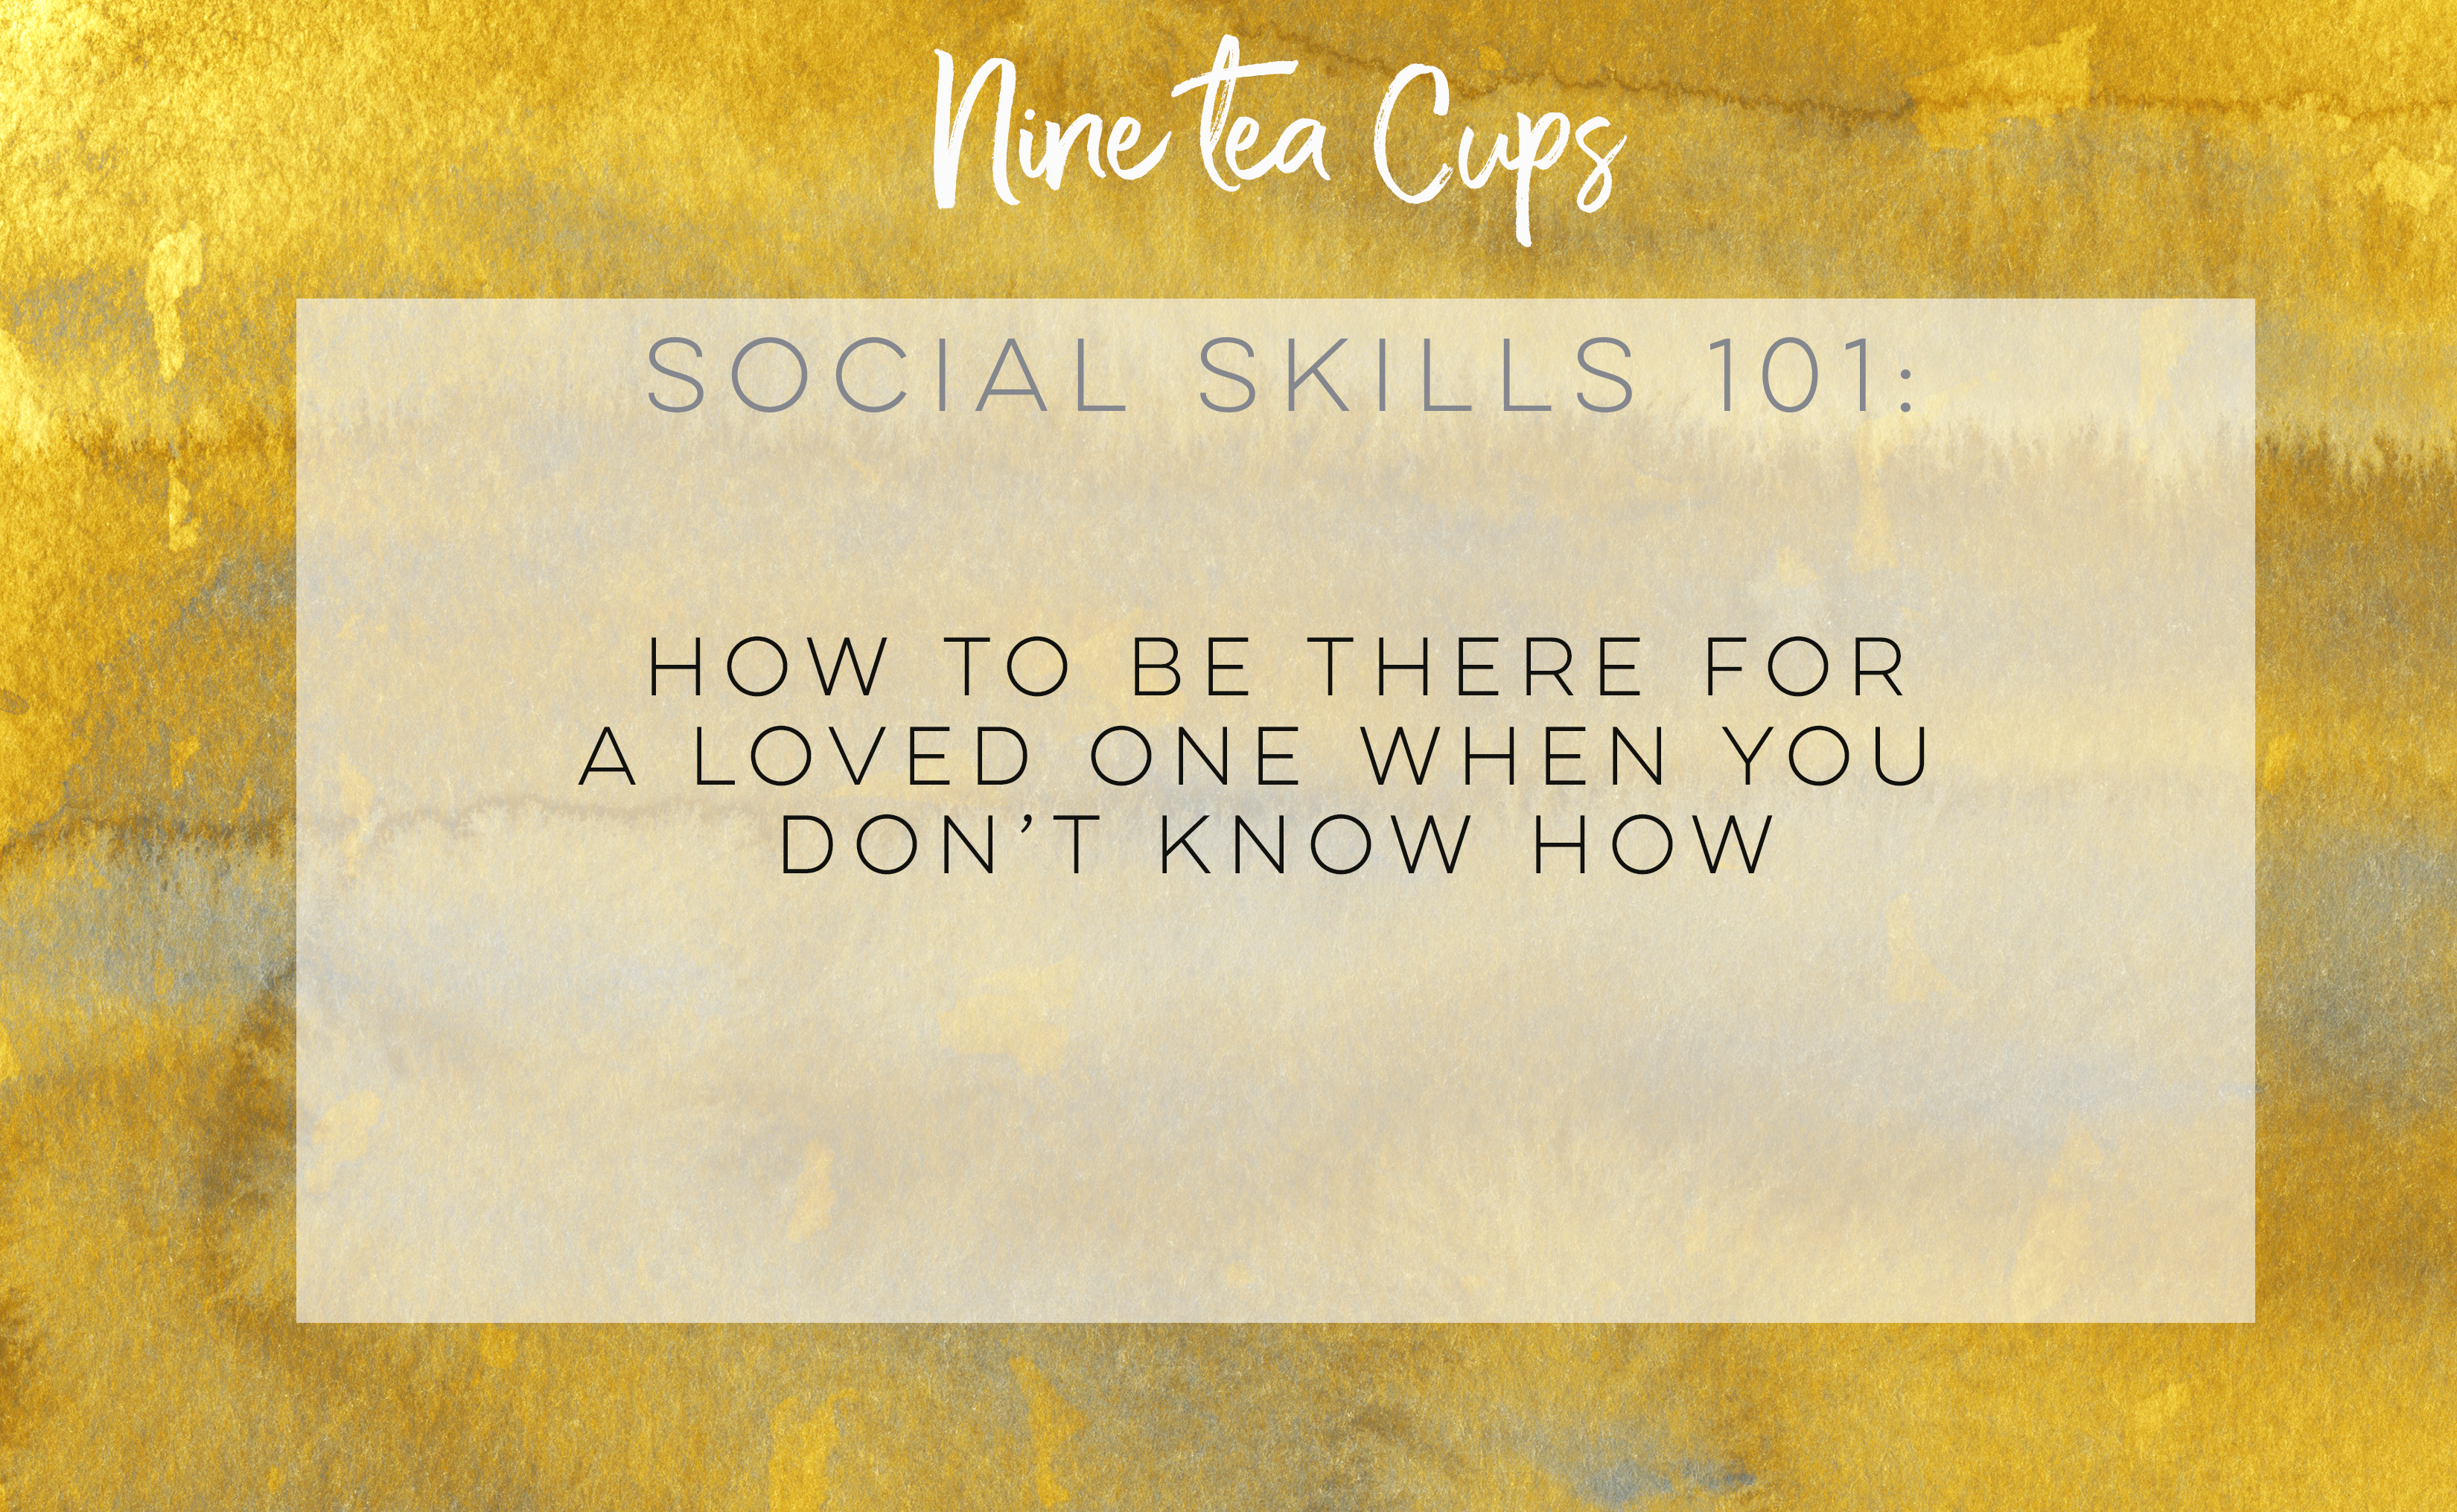 How to be there for a loved one when you don't know how